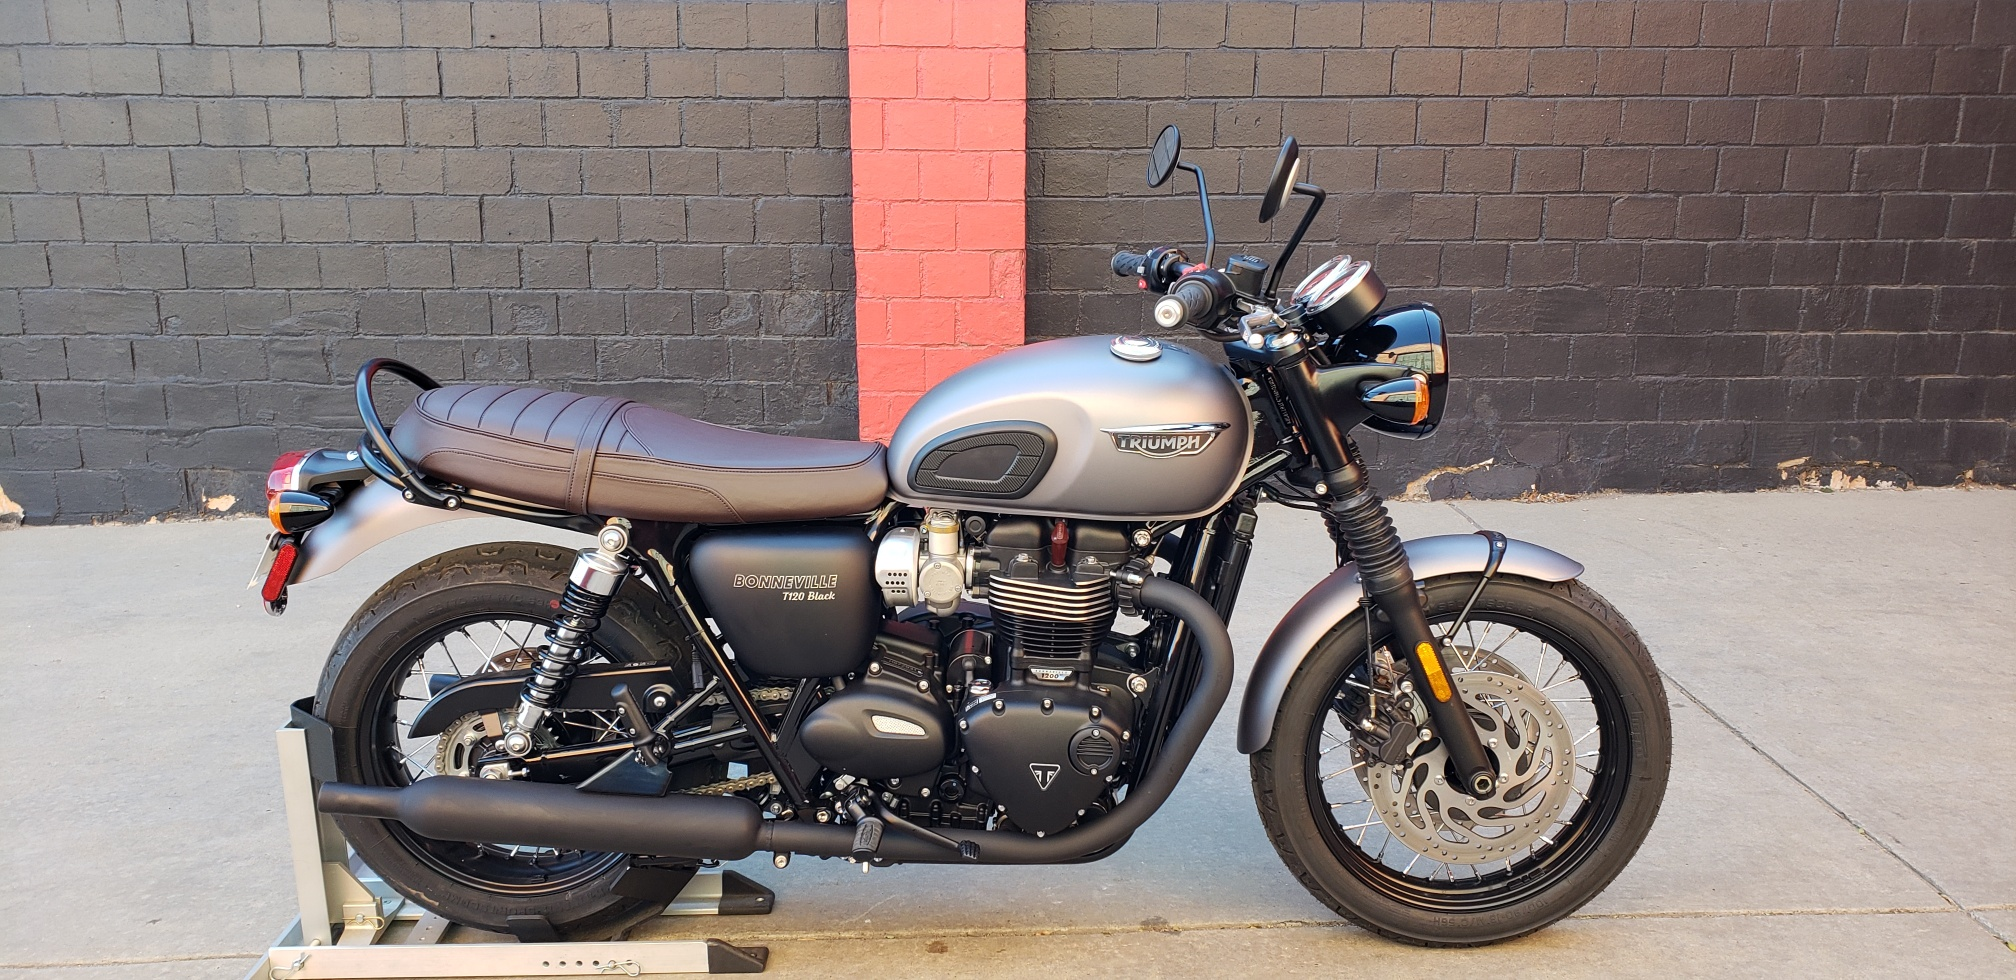 New 2018 TRIUMPH BONNEVILLE T120 BLACK